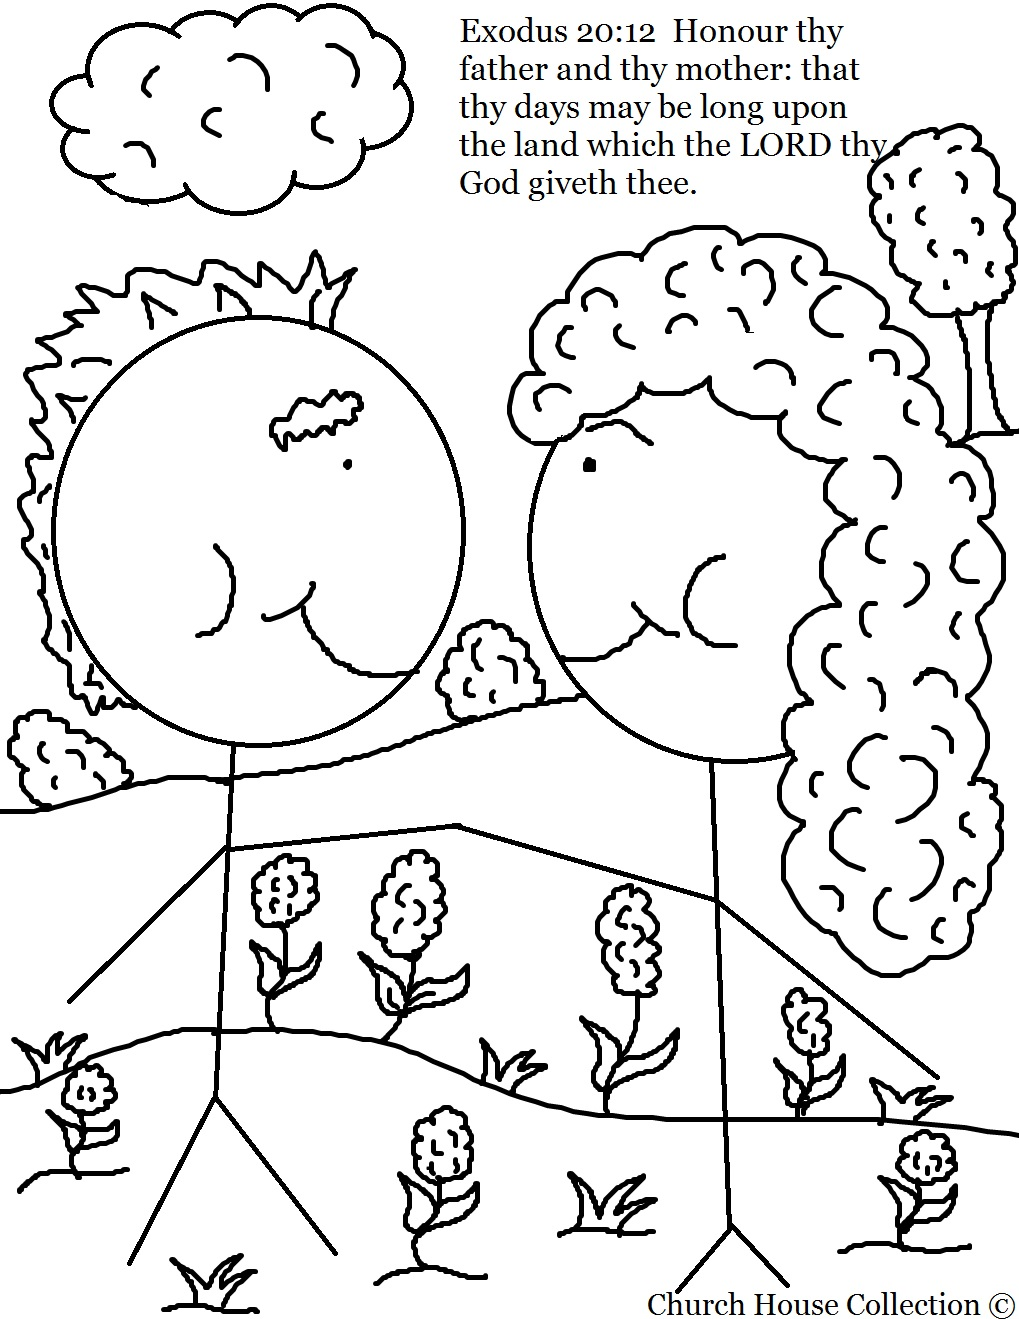 Church house collection blog honor your mother and father for Mom and dad coloring pages